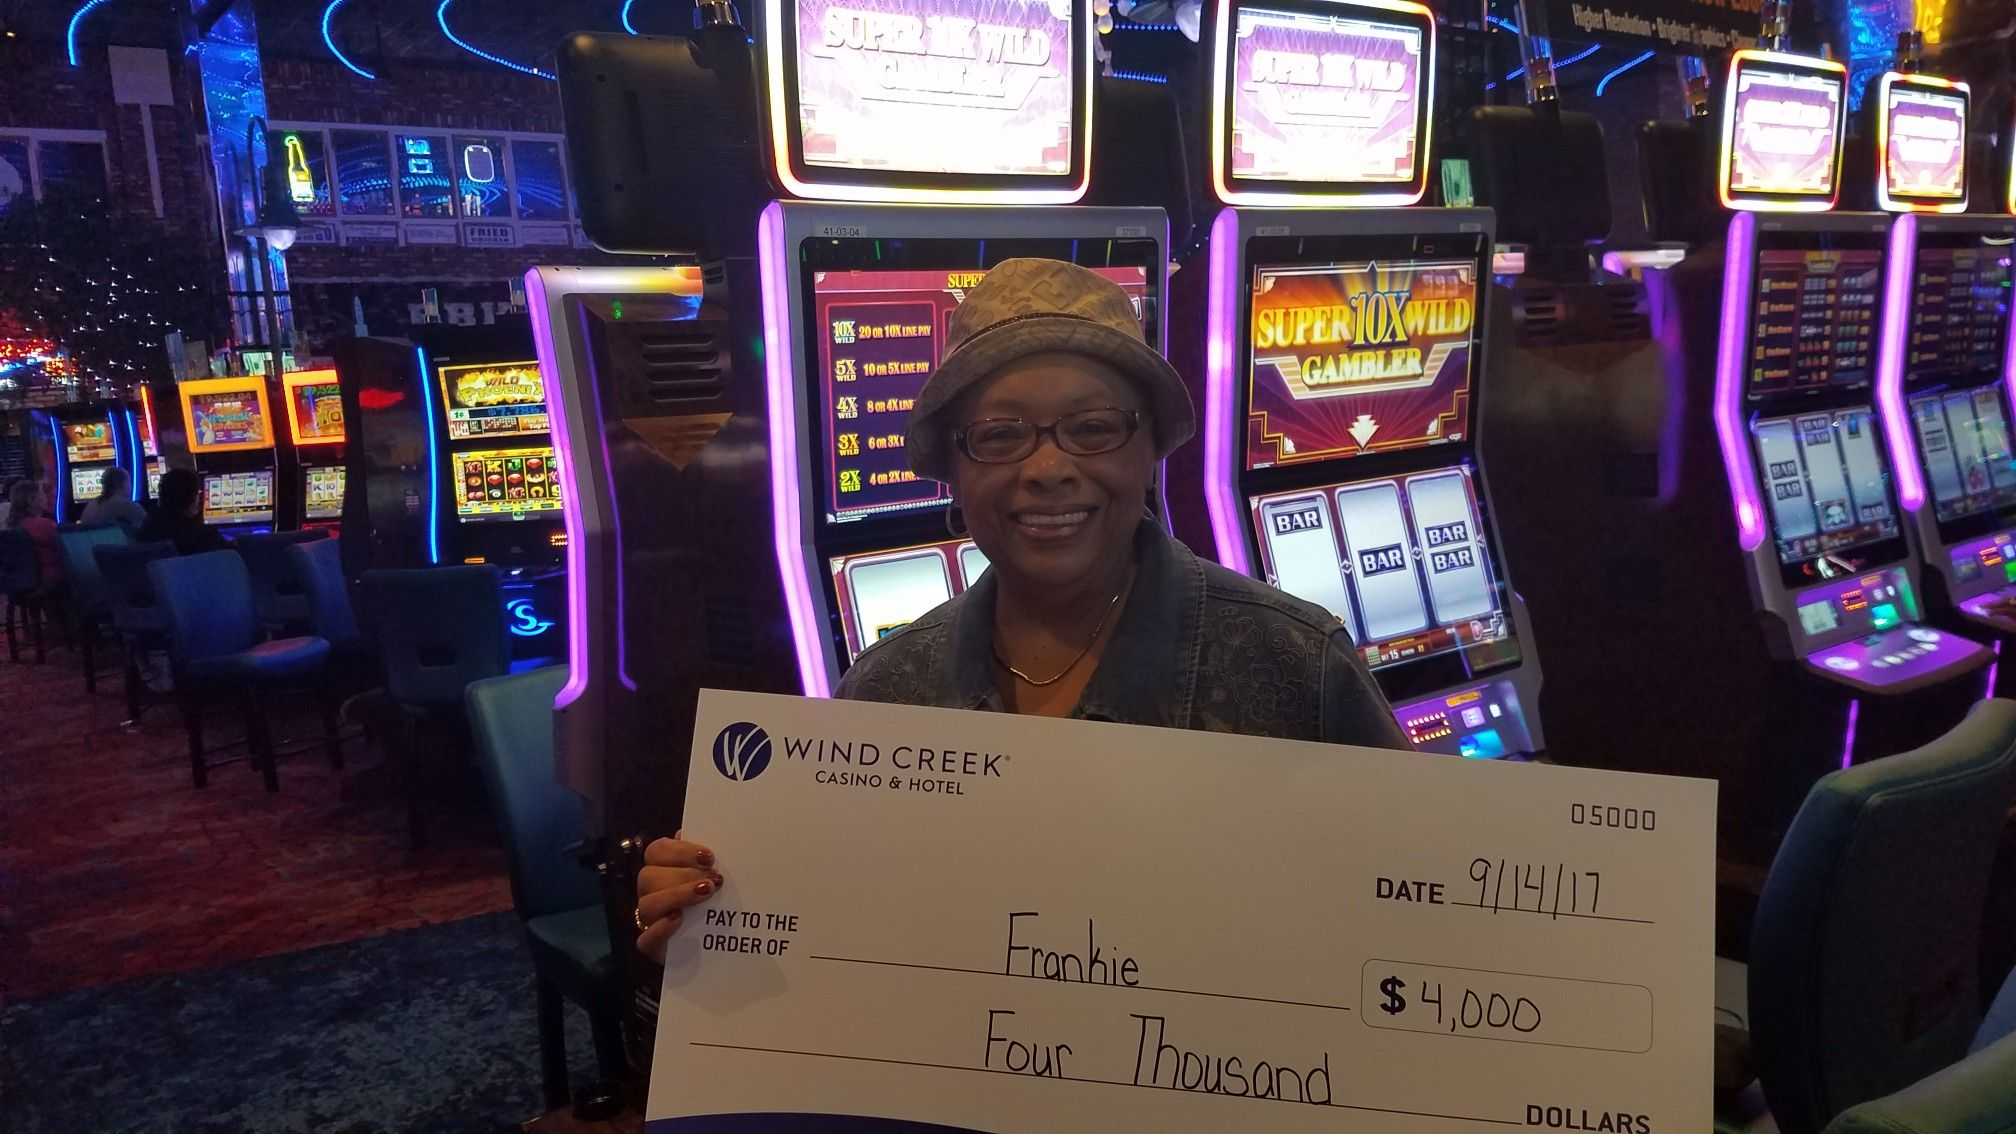 Congratulations To Frankie On Winning 4 000 On Super 10x Wild Gambler Winningmoment Jackpot Winners Landline Phone Congratulations